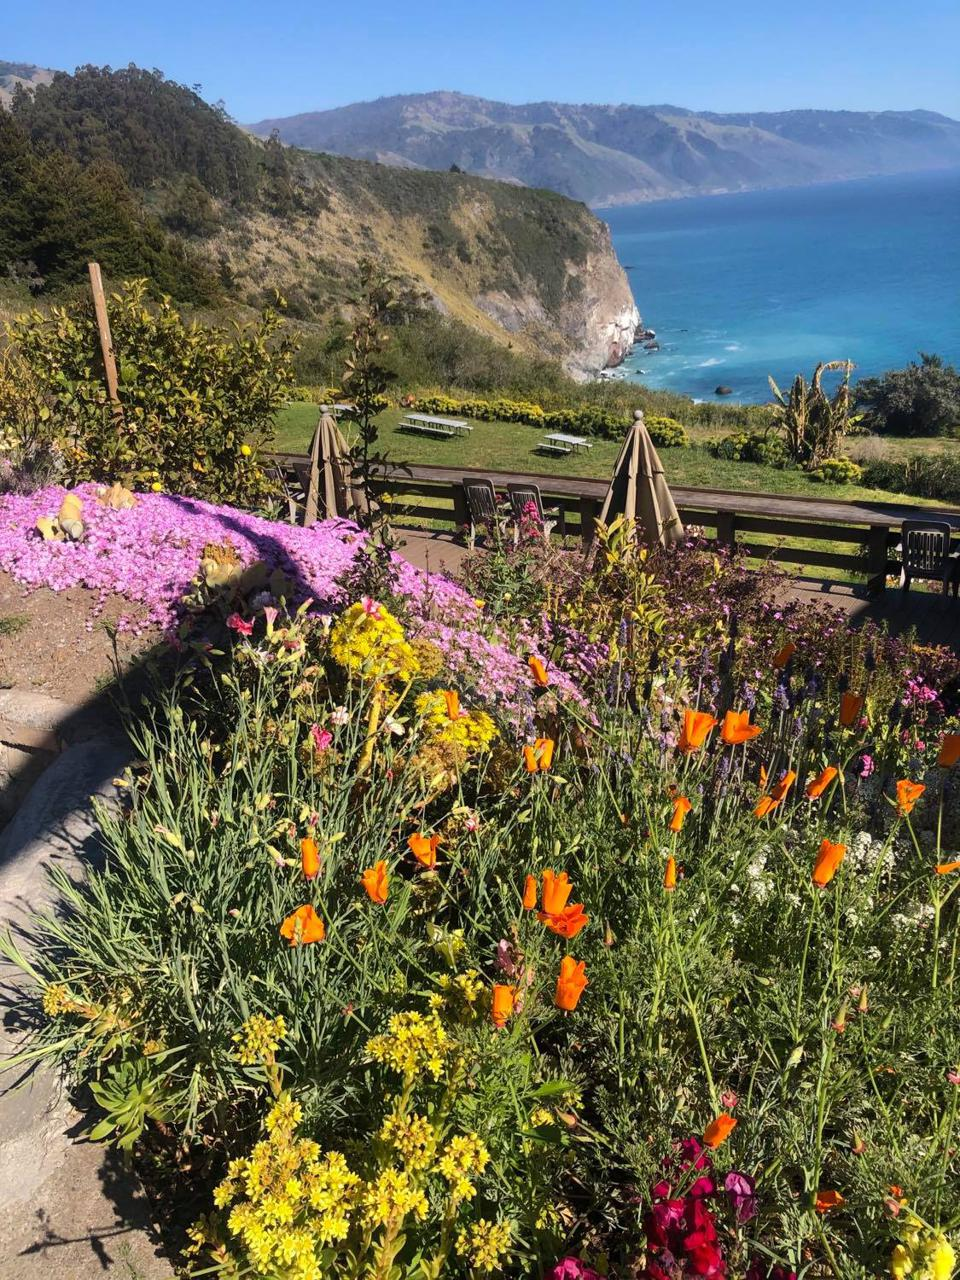 Lucia Lodge is located on the highway in the area known as Big Sur.